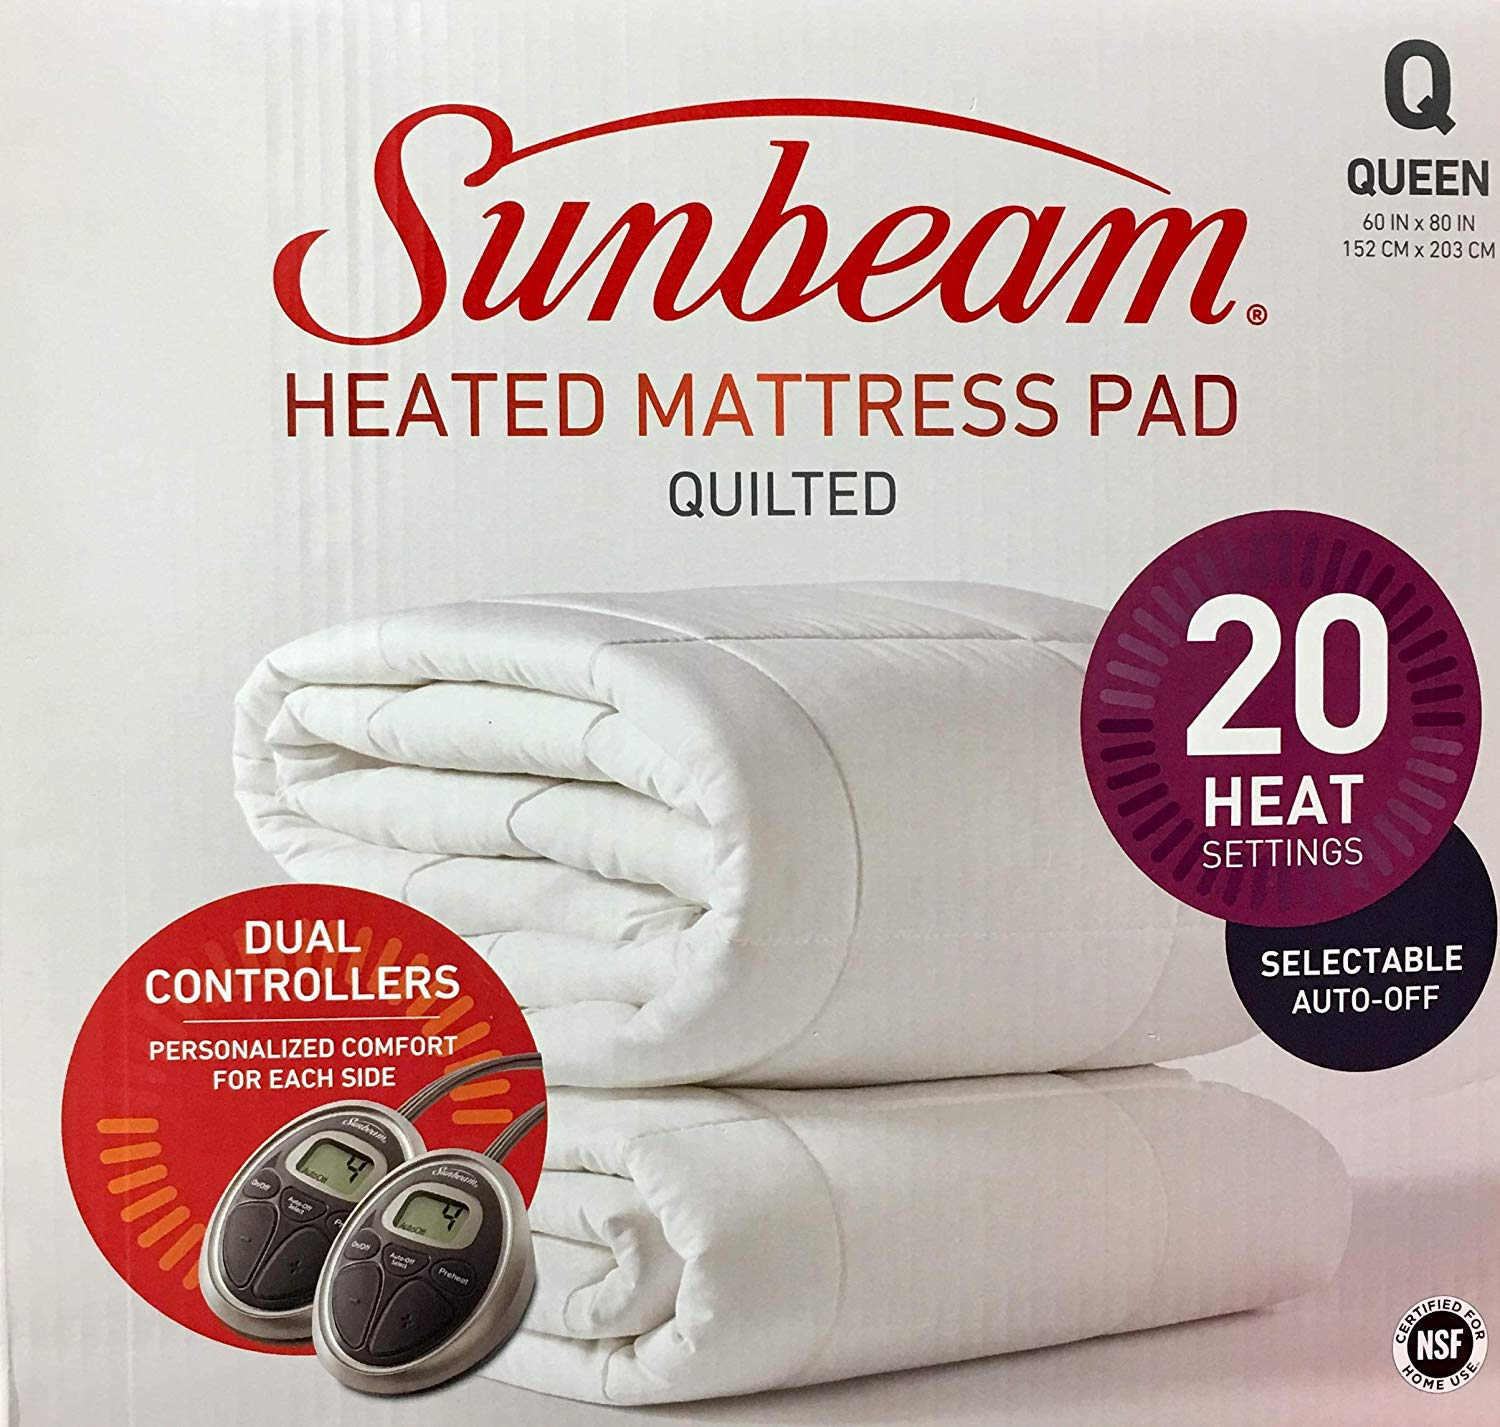 Sunbeam All Season best heated mattress pad review by www.dailysleep.org